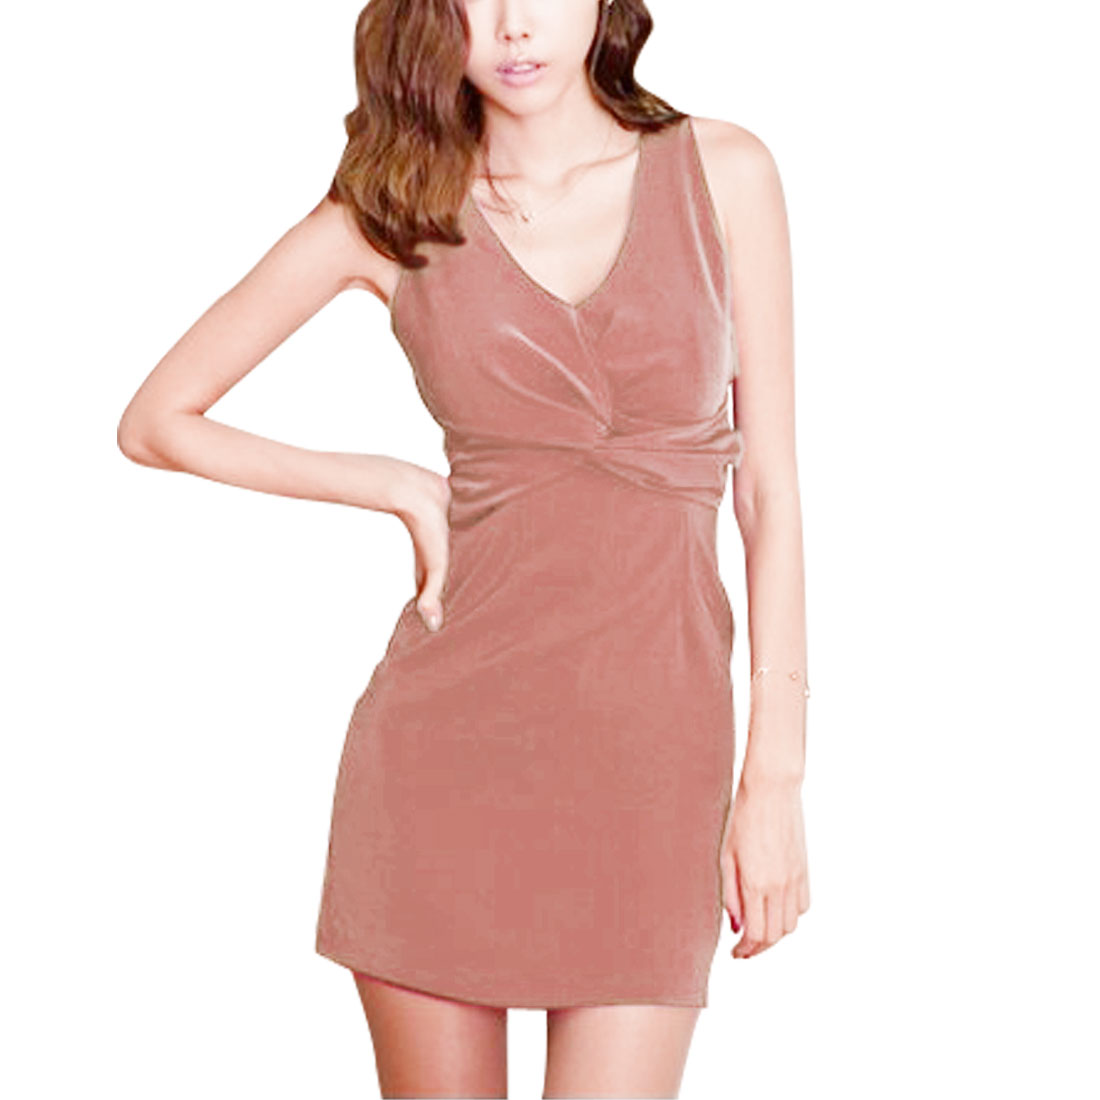 Ladies Light Pink V Neck Casual Skinny Tank Dress XS